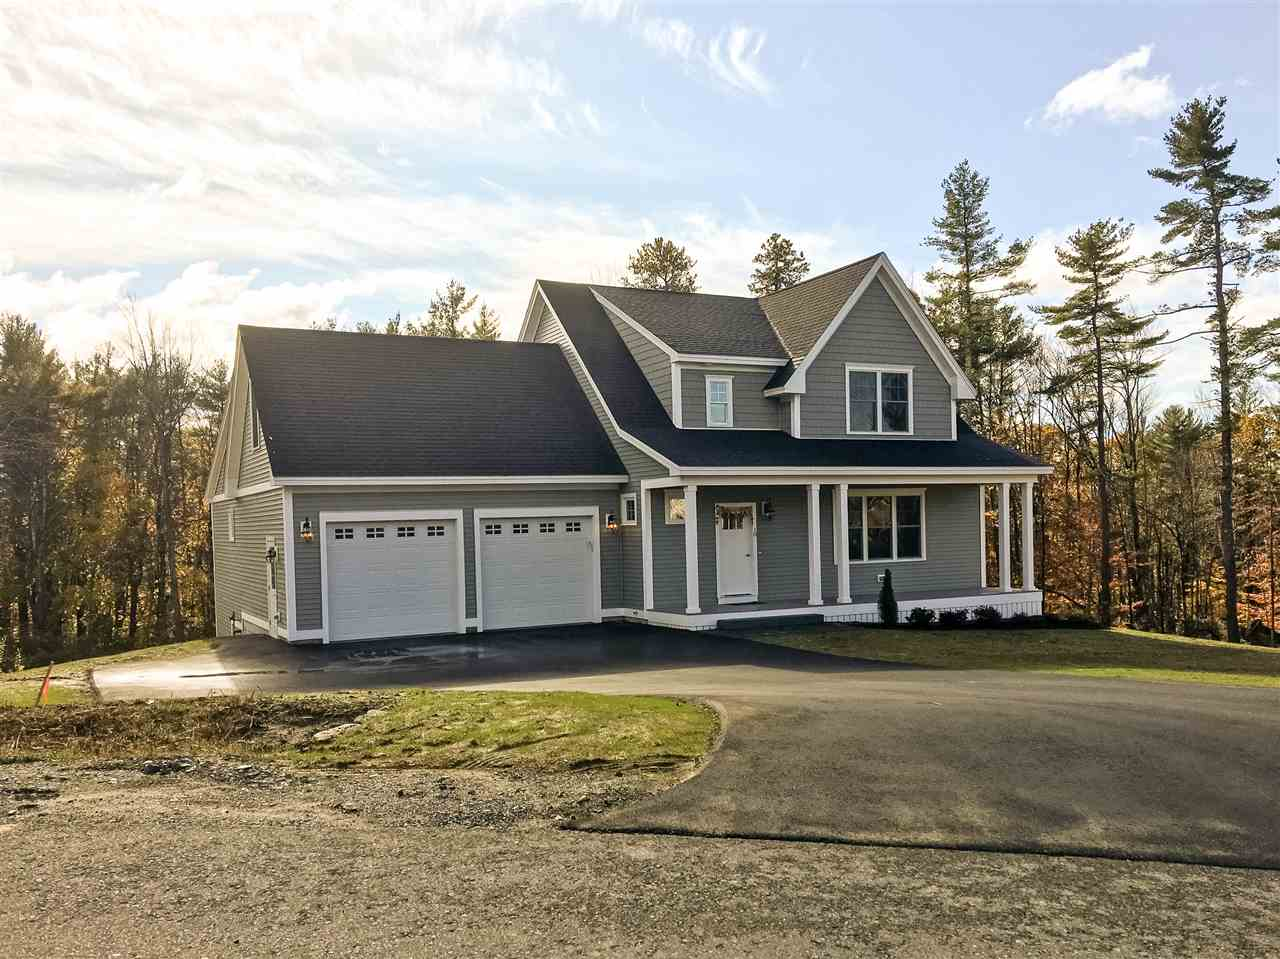 Photo of 18 Breslin Farm Road Stratham NH 03885